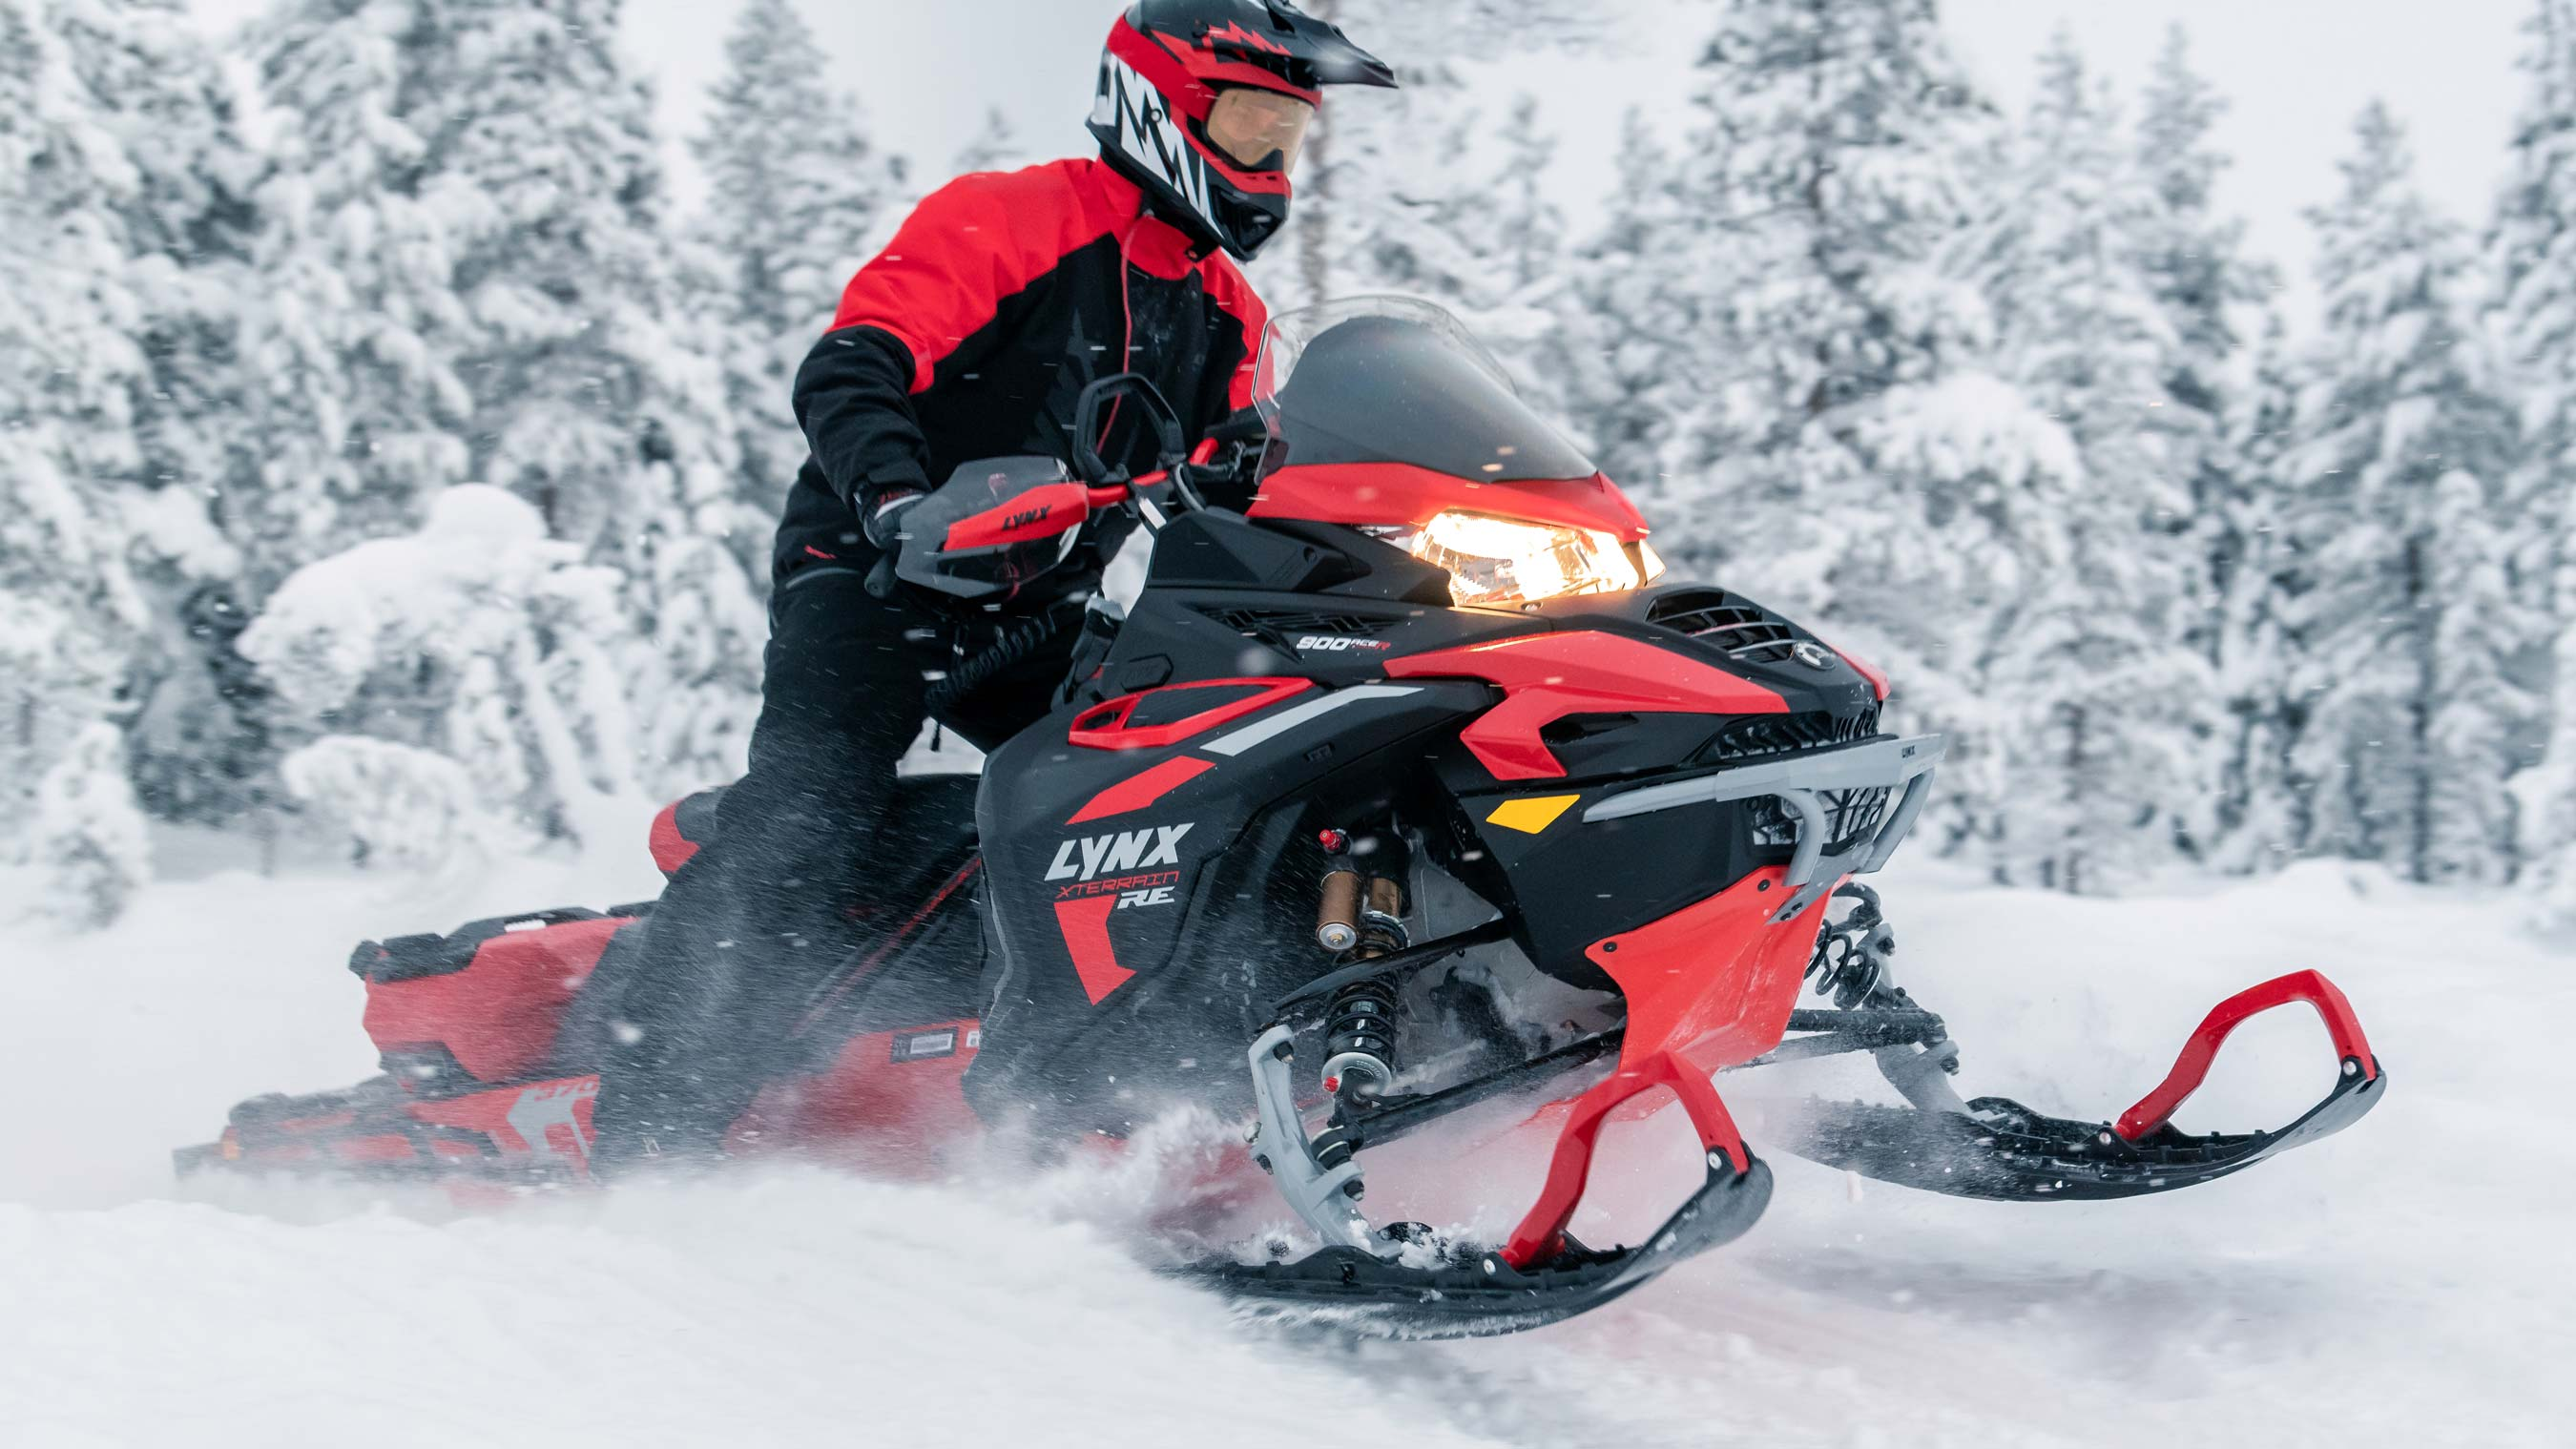 Lynx Xterrain RE snowmobile riding in snowy forest